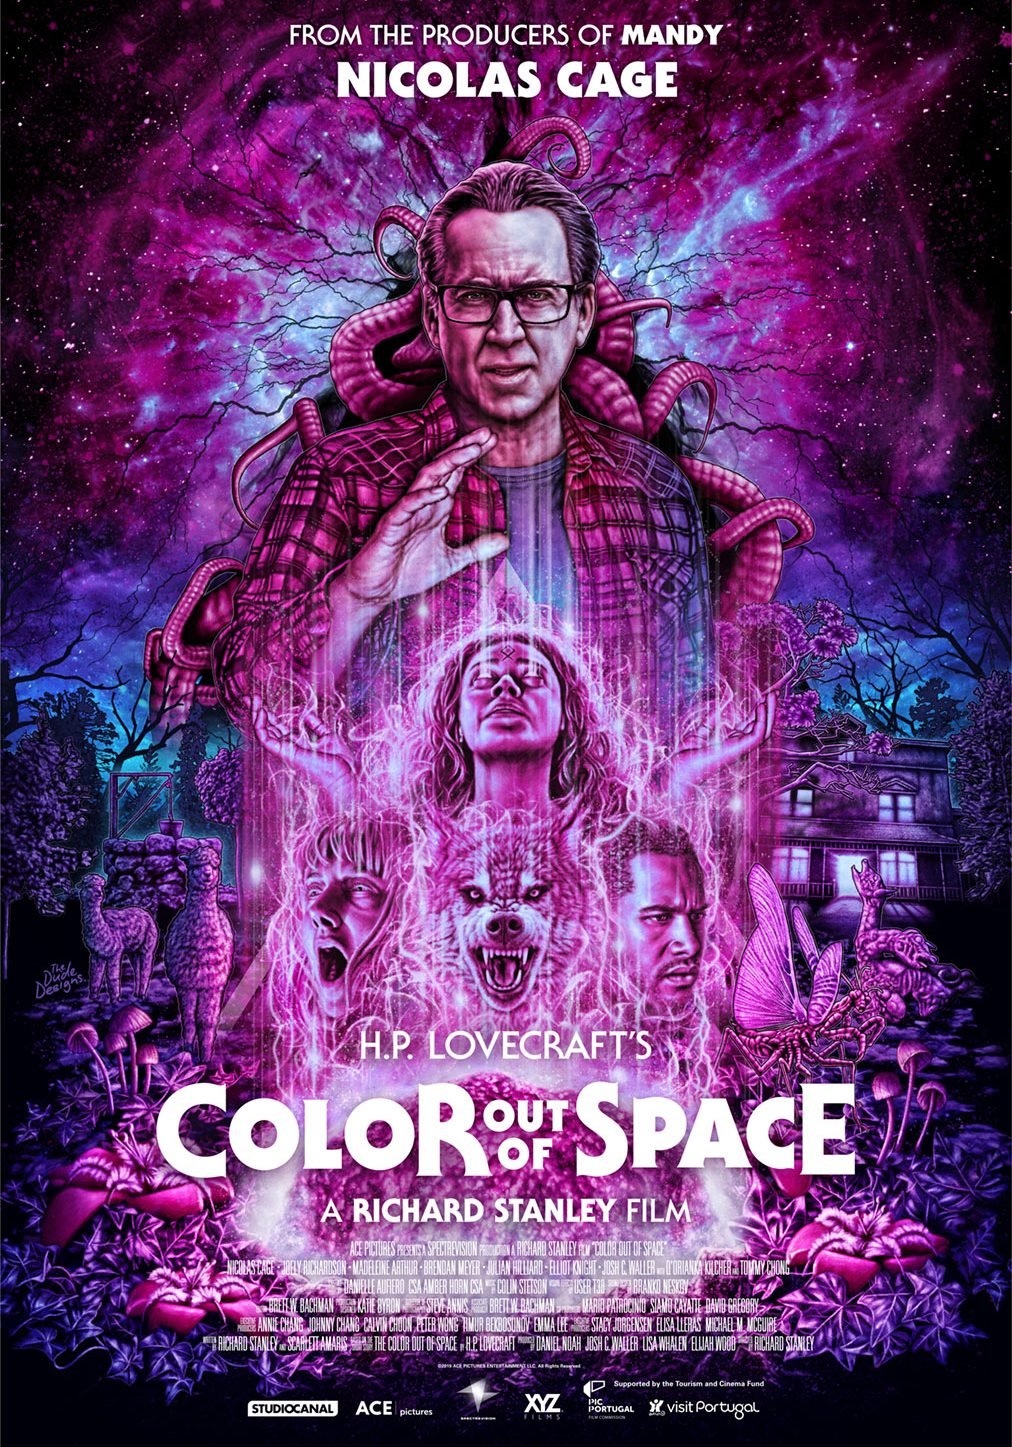 Color-out-of-Space-Poster-UK_1500x1012_Webclrs